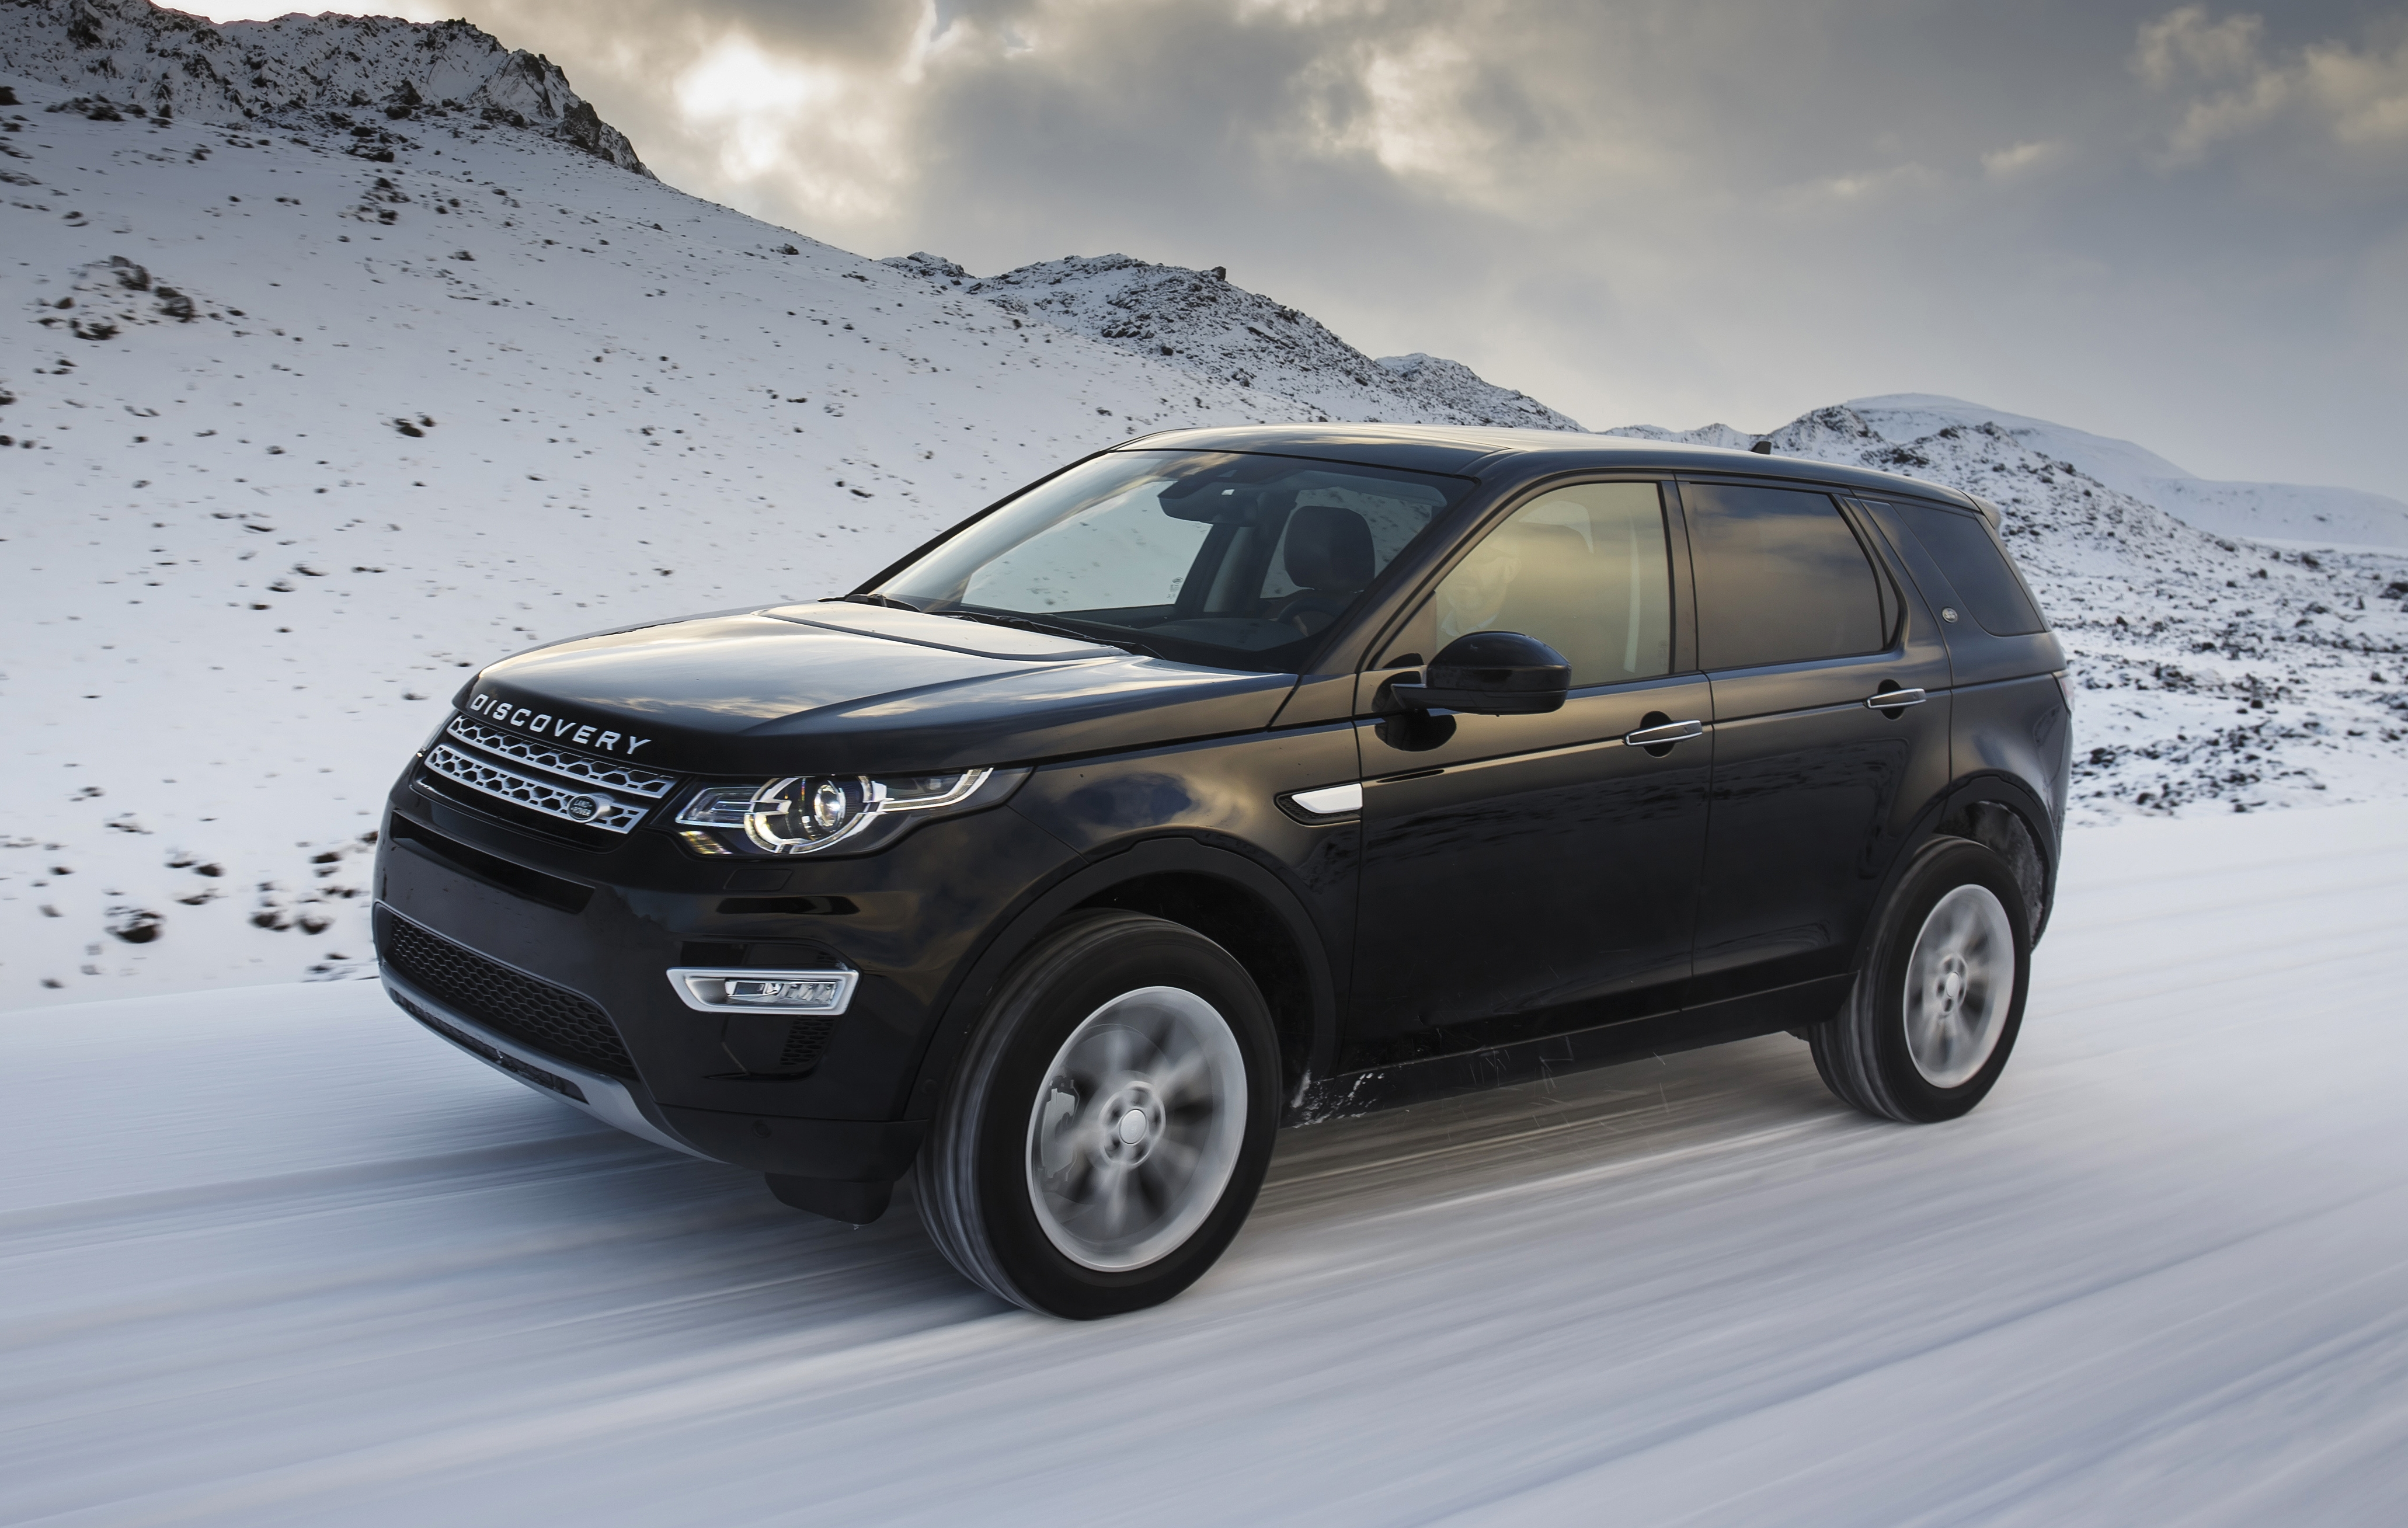 Land Rover Discovery Sport >> DRIVEN: L550 Land Rover Discovery Sport in Iceland Image 344803